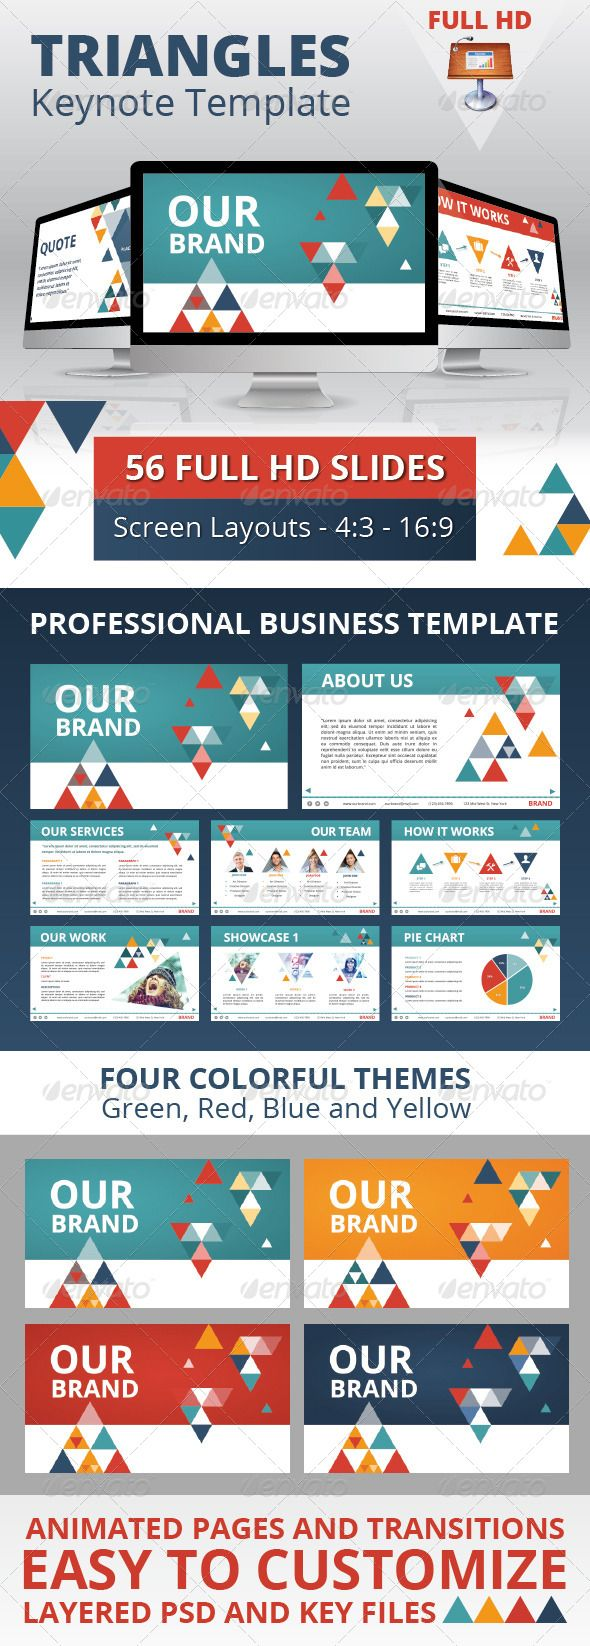 Triangles Business Keynote Template